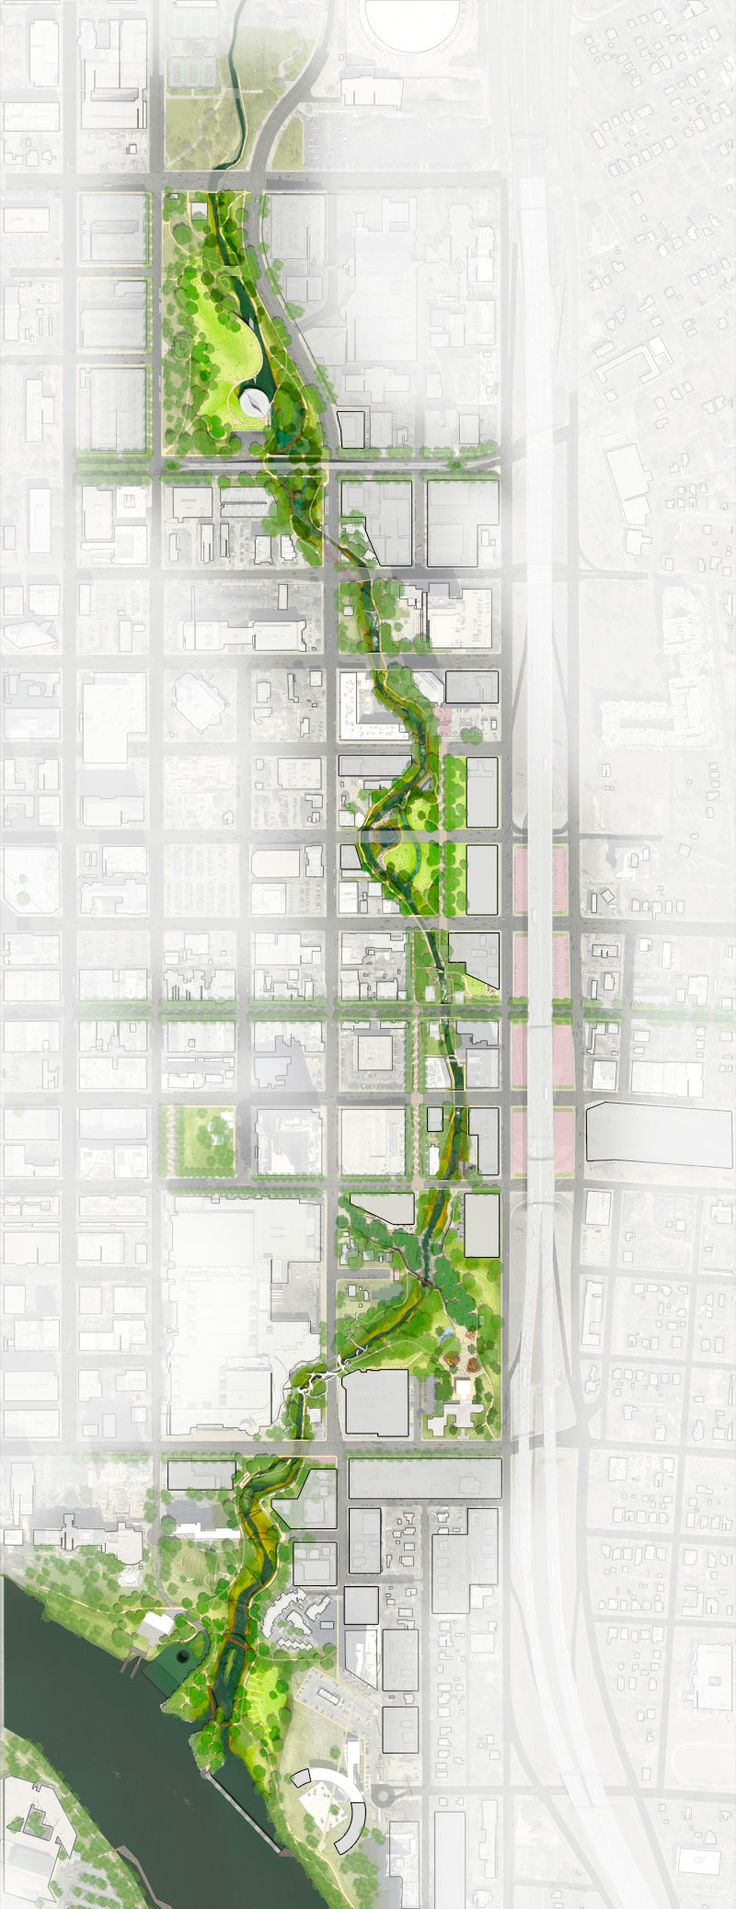 1000 Ideas About Master Plan On Pinterest Site Plans Urban